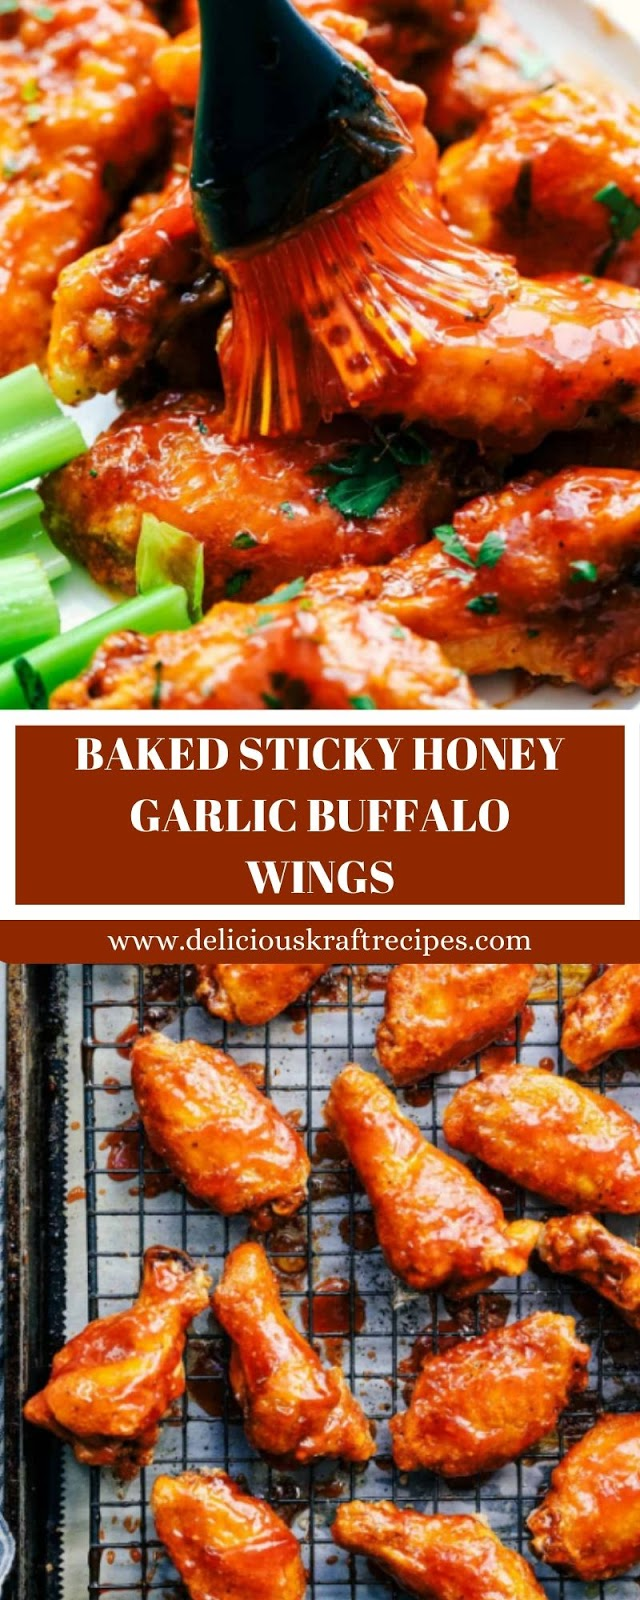 BAKED STICKY HONEY GARLIC BUFFALO WINGS